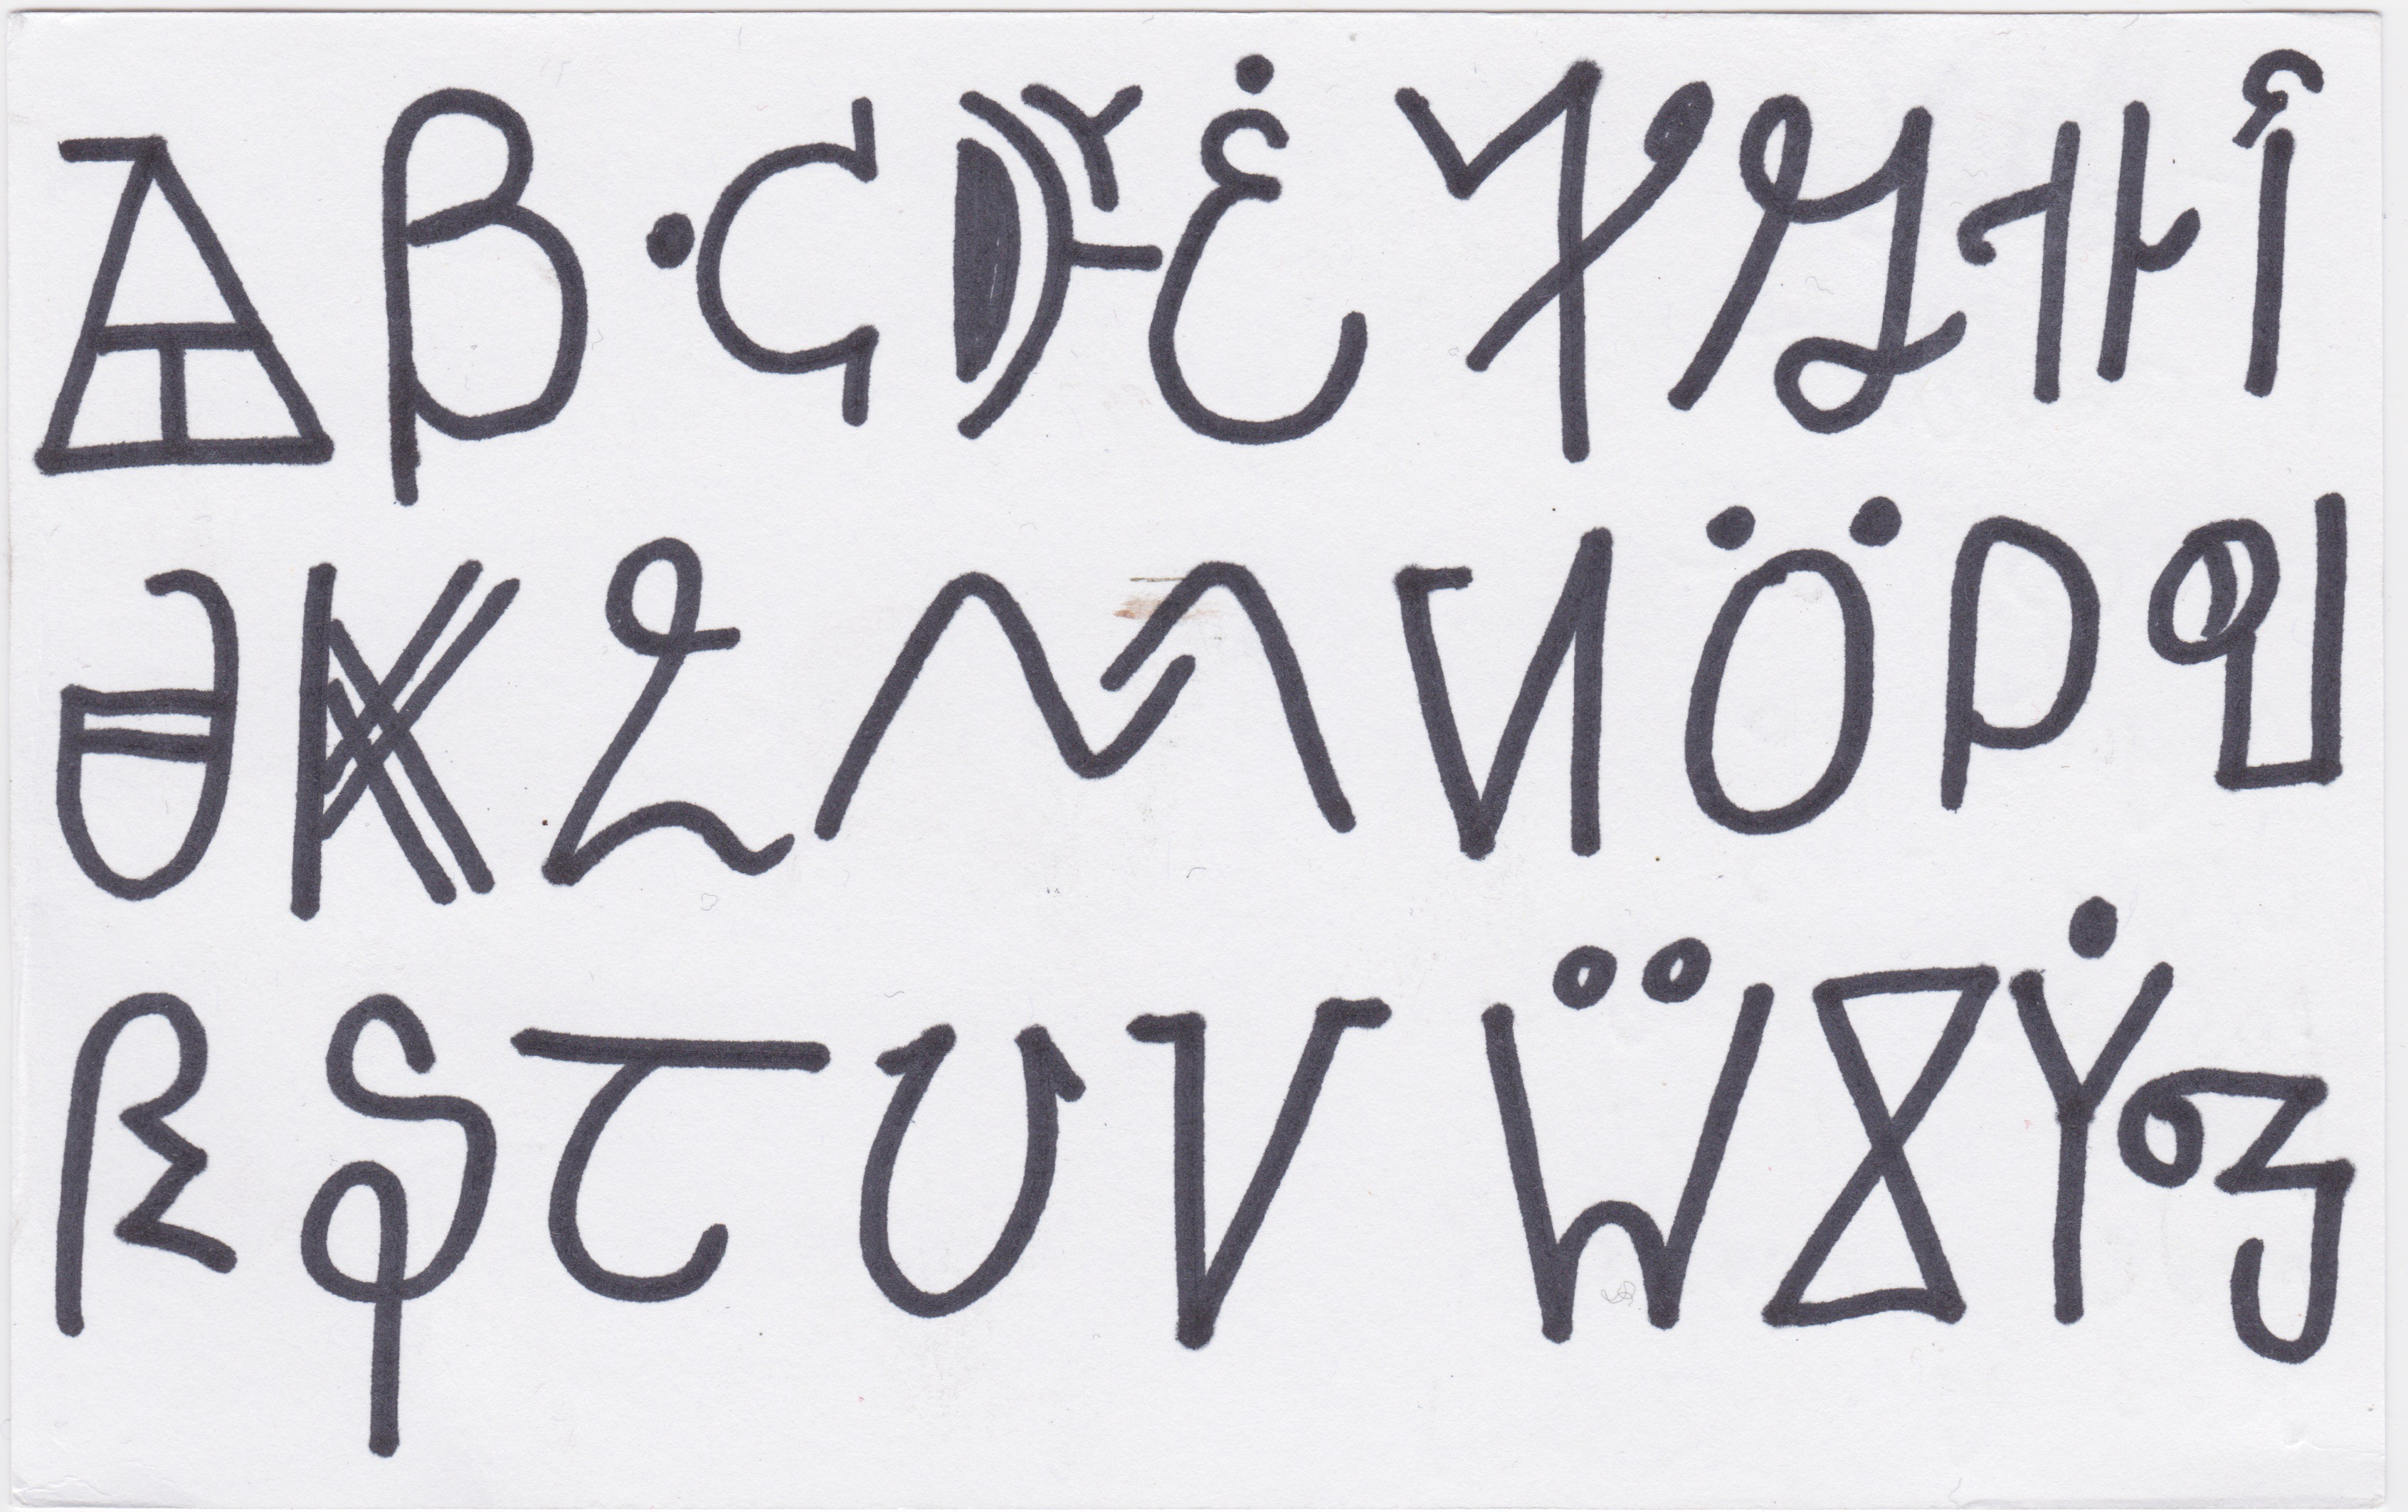 Black sharpie pen written on white thin postcard, running through the alphabet from A in the top left, to Z bottom right.